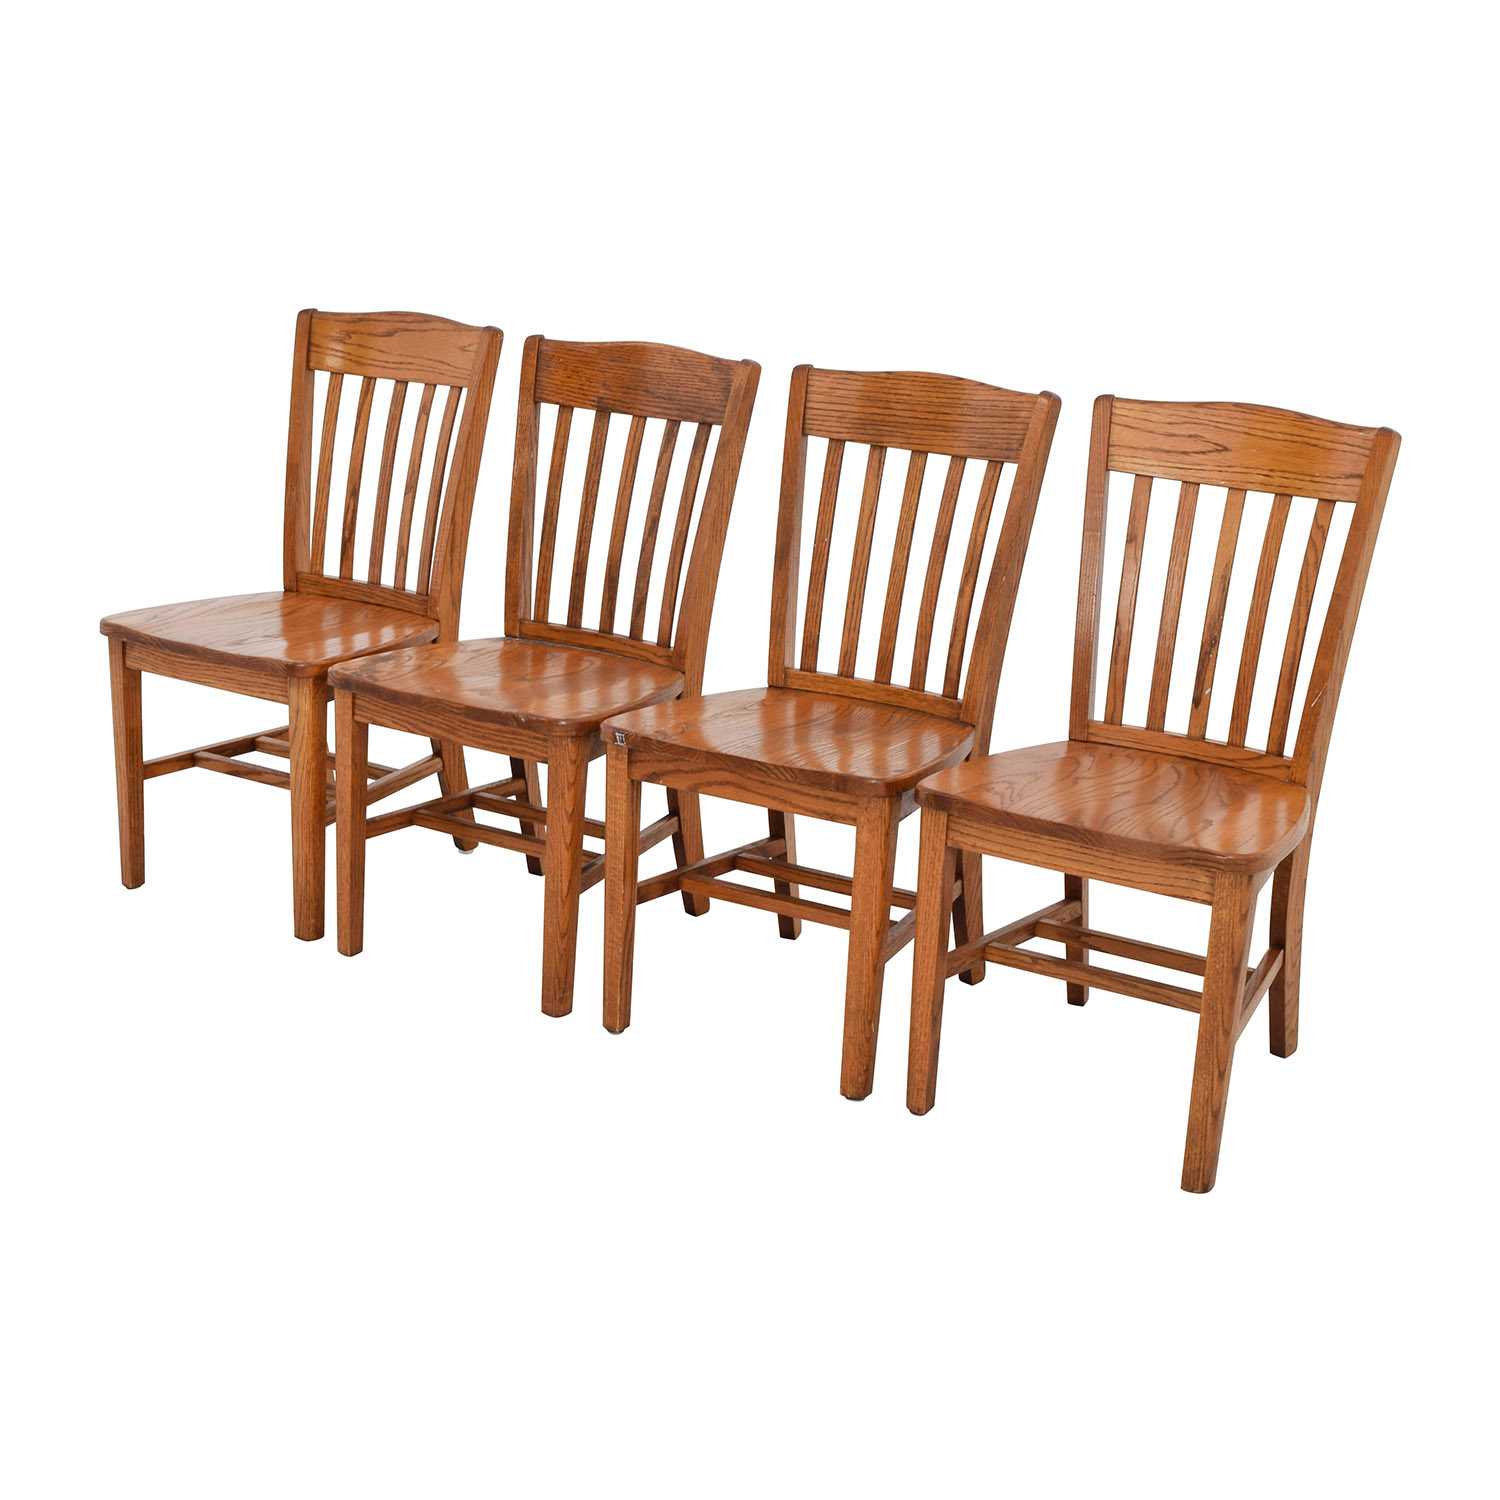 71 off four brown slat back wood chairs chairs